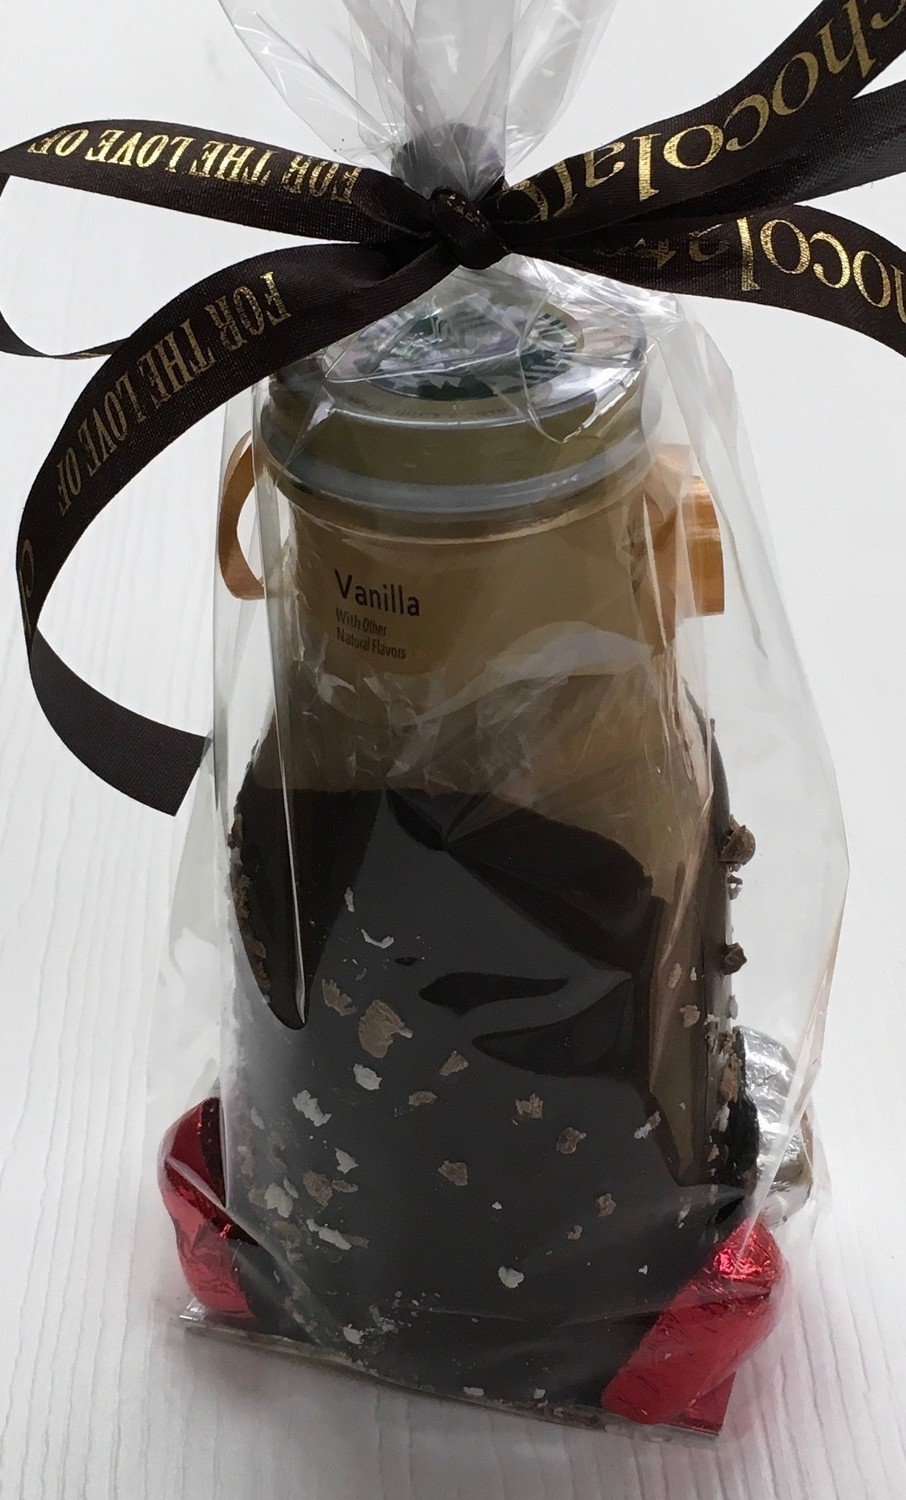 Starbucks Frappacino Vanilla or Coffee.  Chocolate Covered with foiled heart accents.